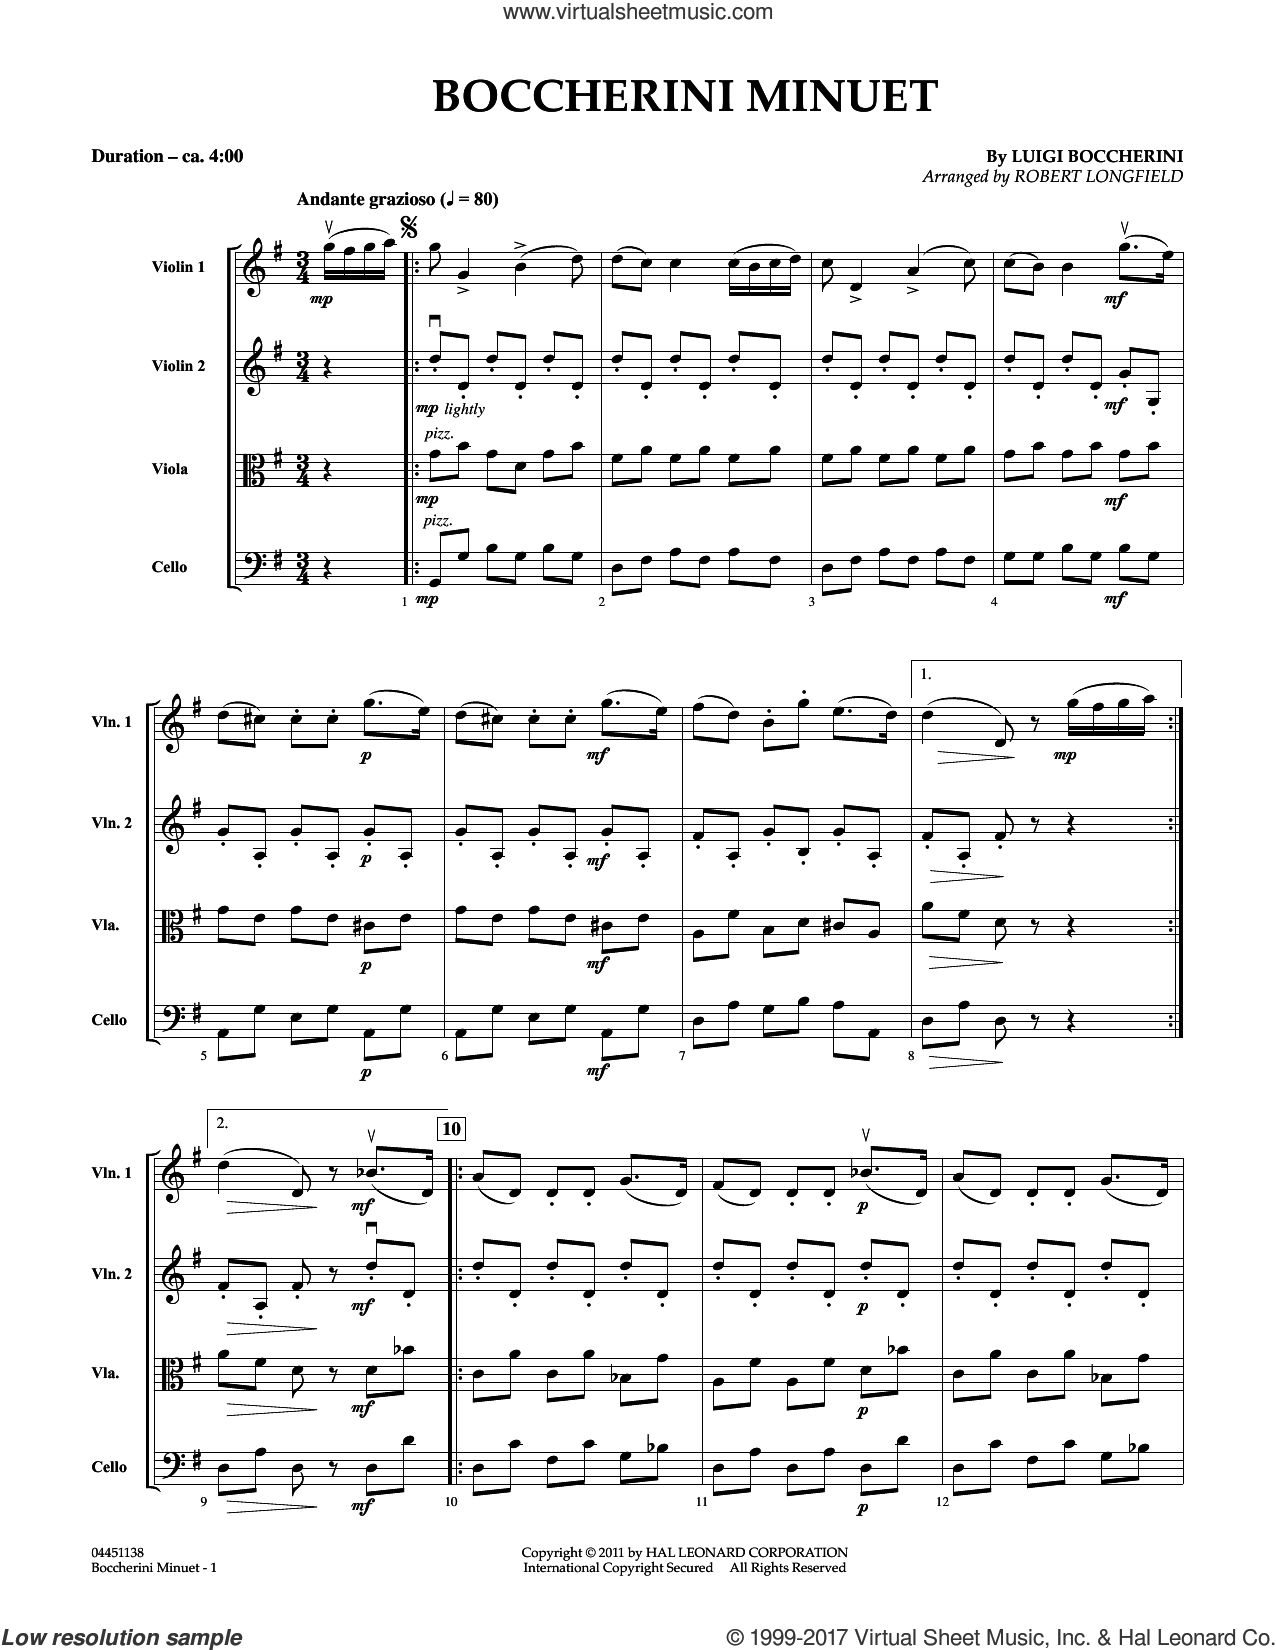 Boccherini Minuet (COMPLETE) sheet music for orchestra (Strings) by Robert Longfield and Luigi Boccherini, classical score, intermediate skill level